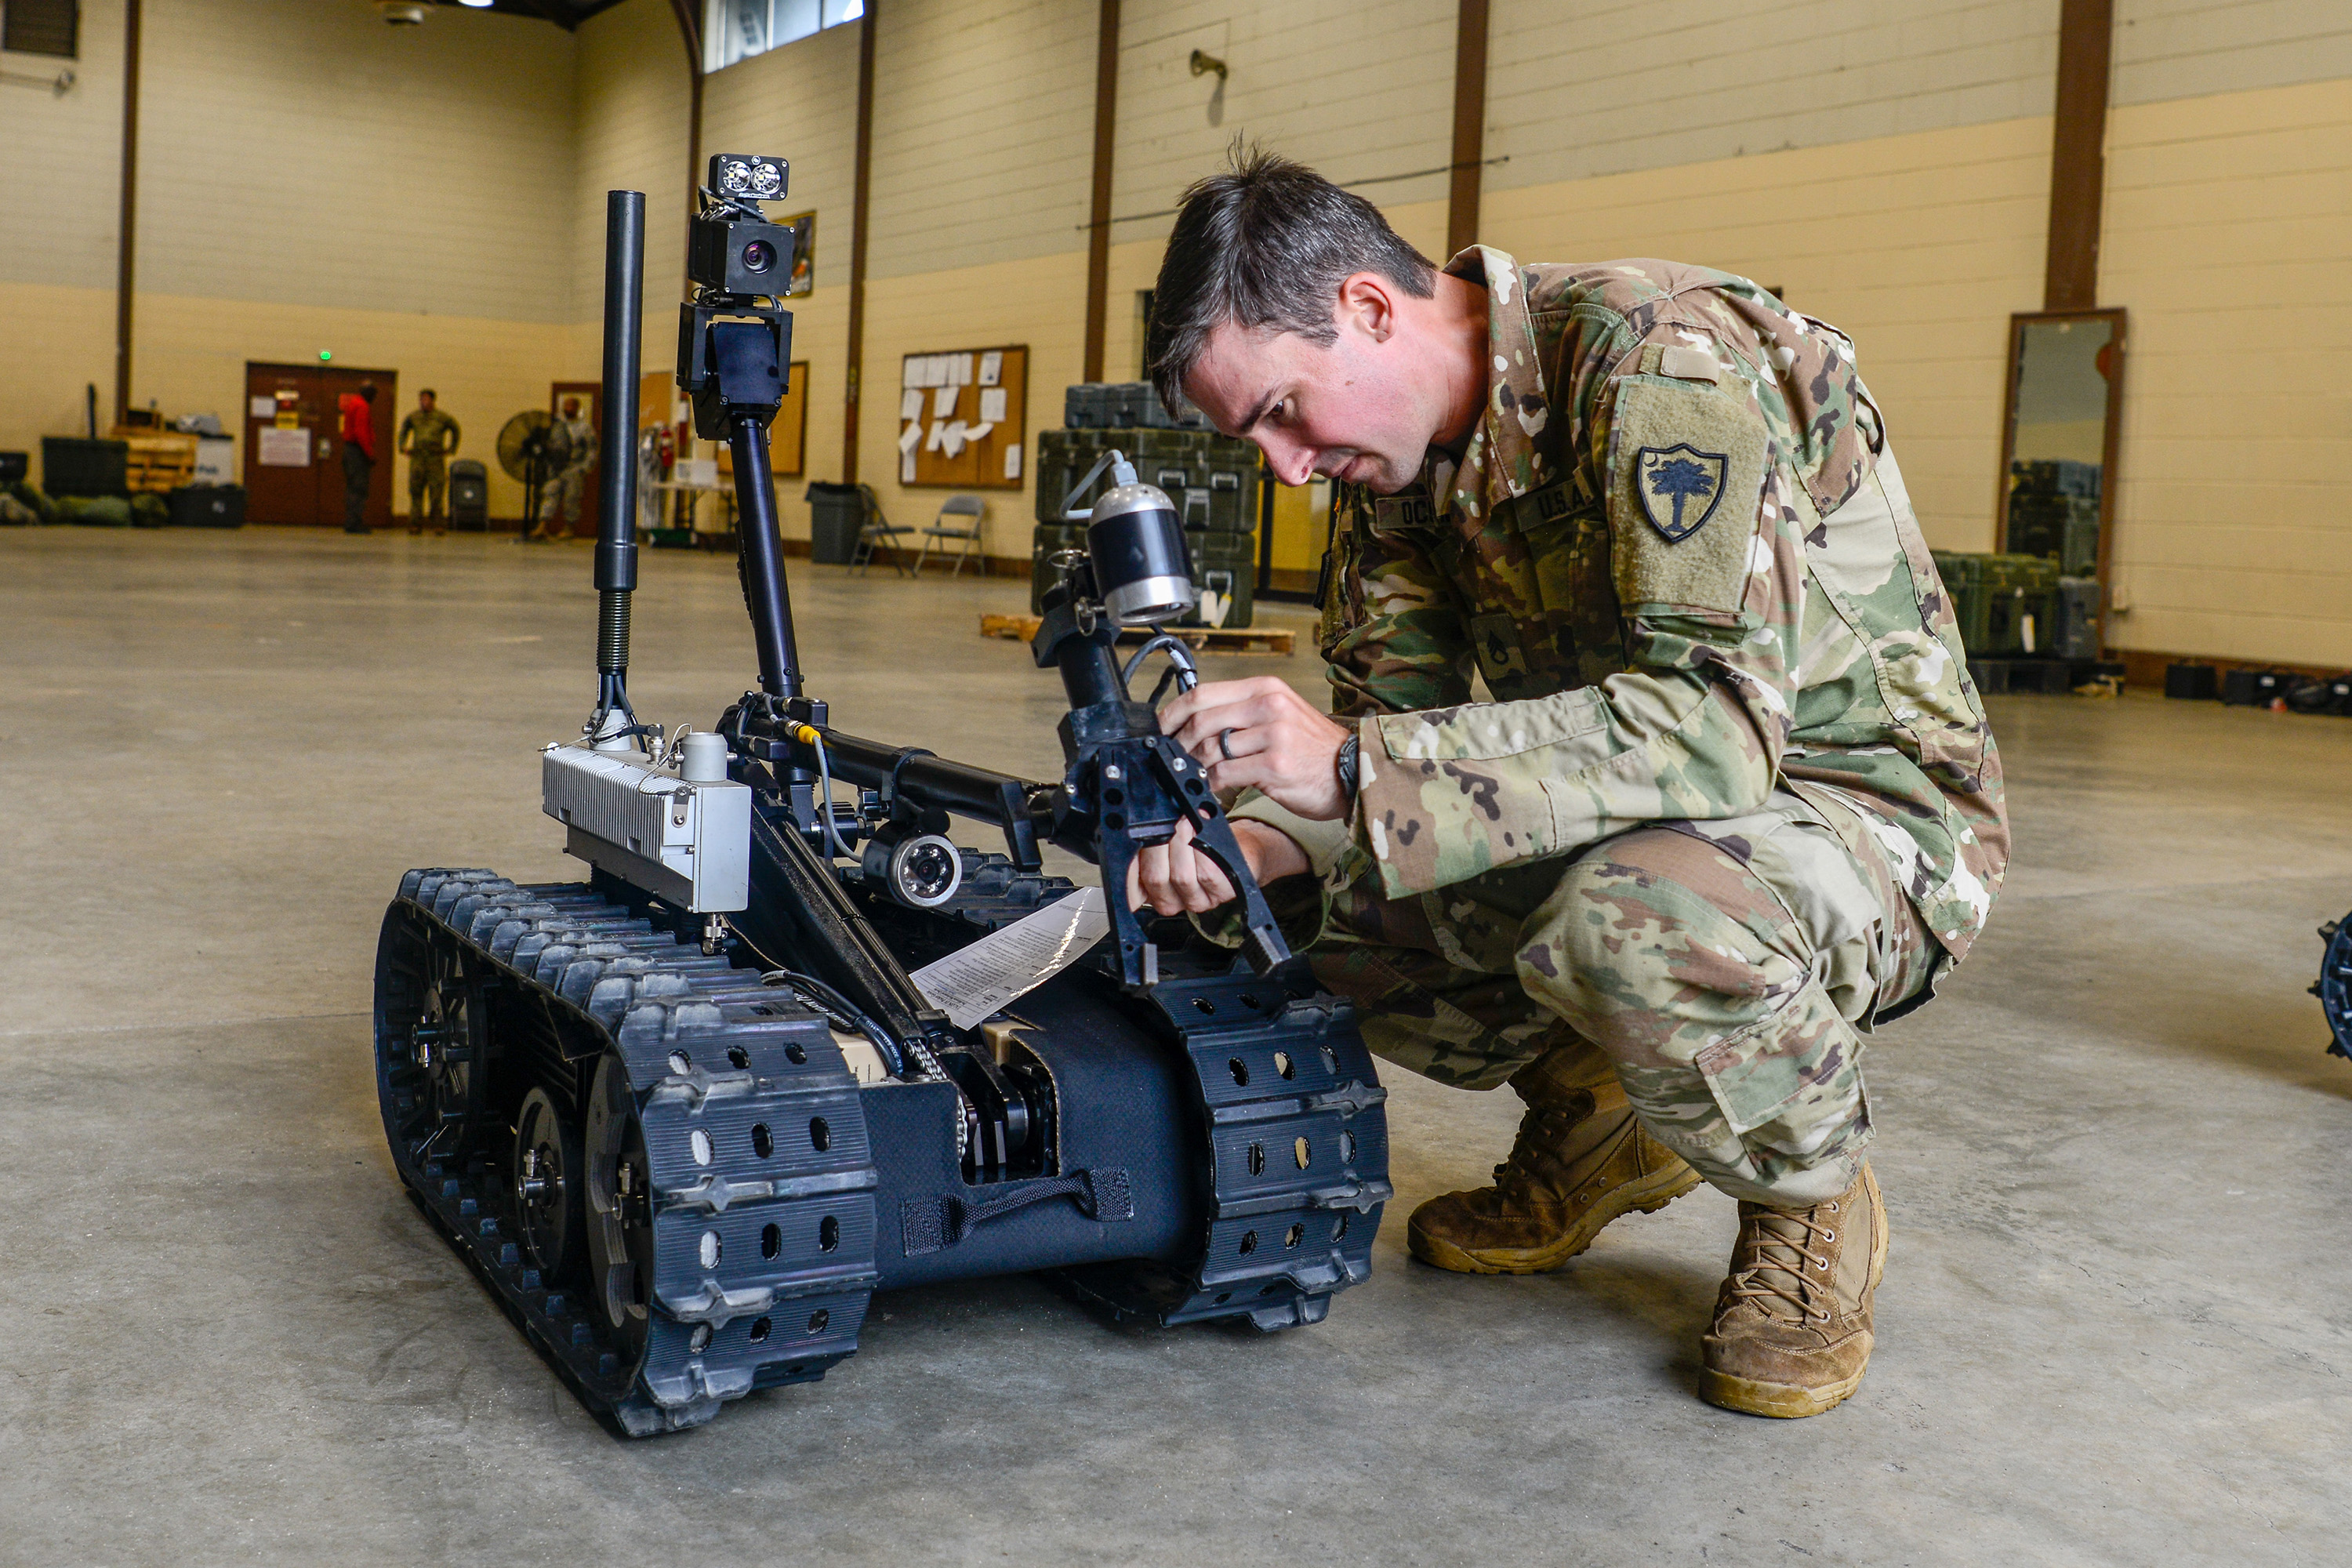 b5886baca98 Guard members to see expanded use of robots > National Guard > Guard ...